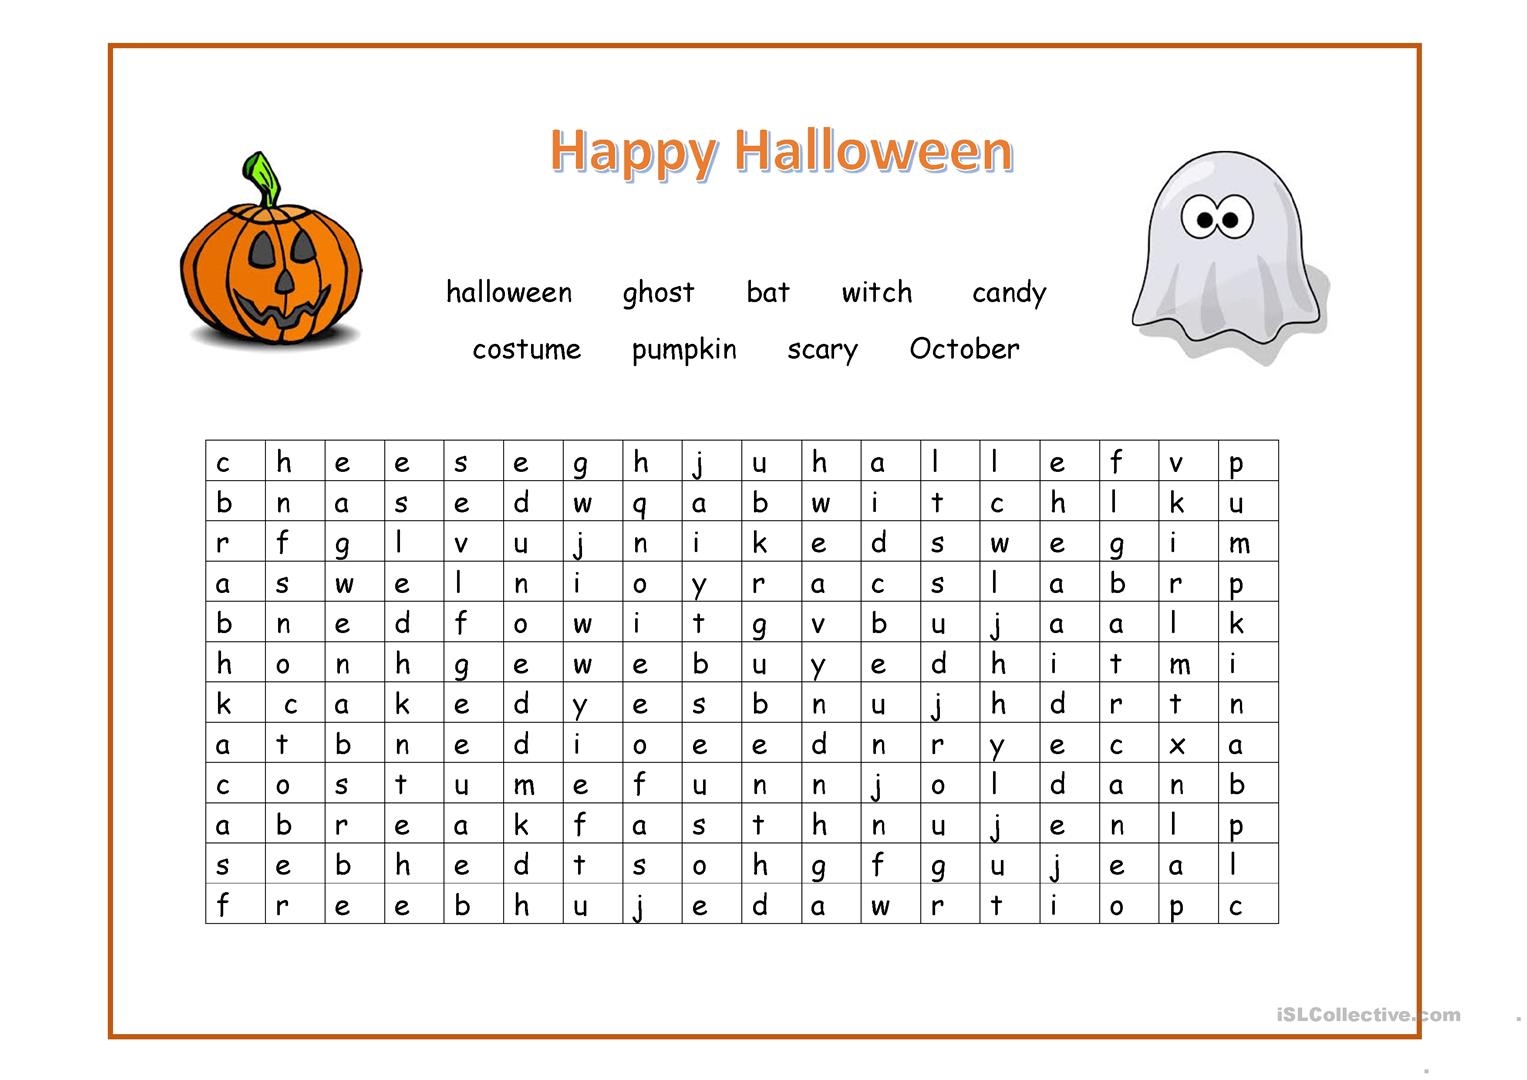 Happy Halloween Wordsearch